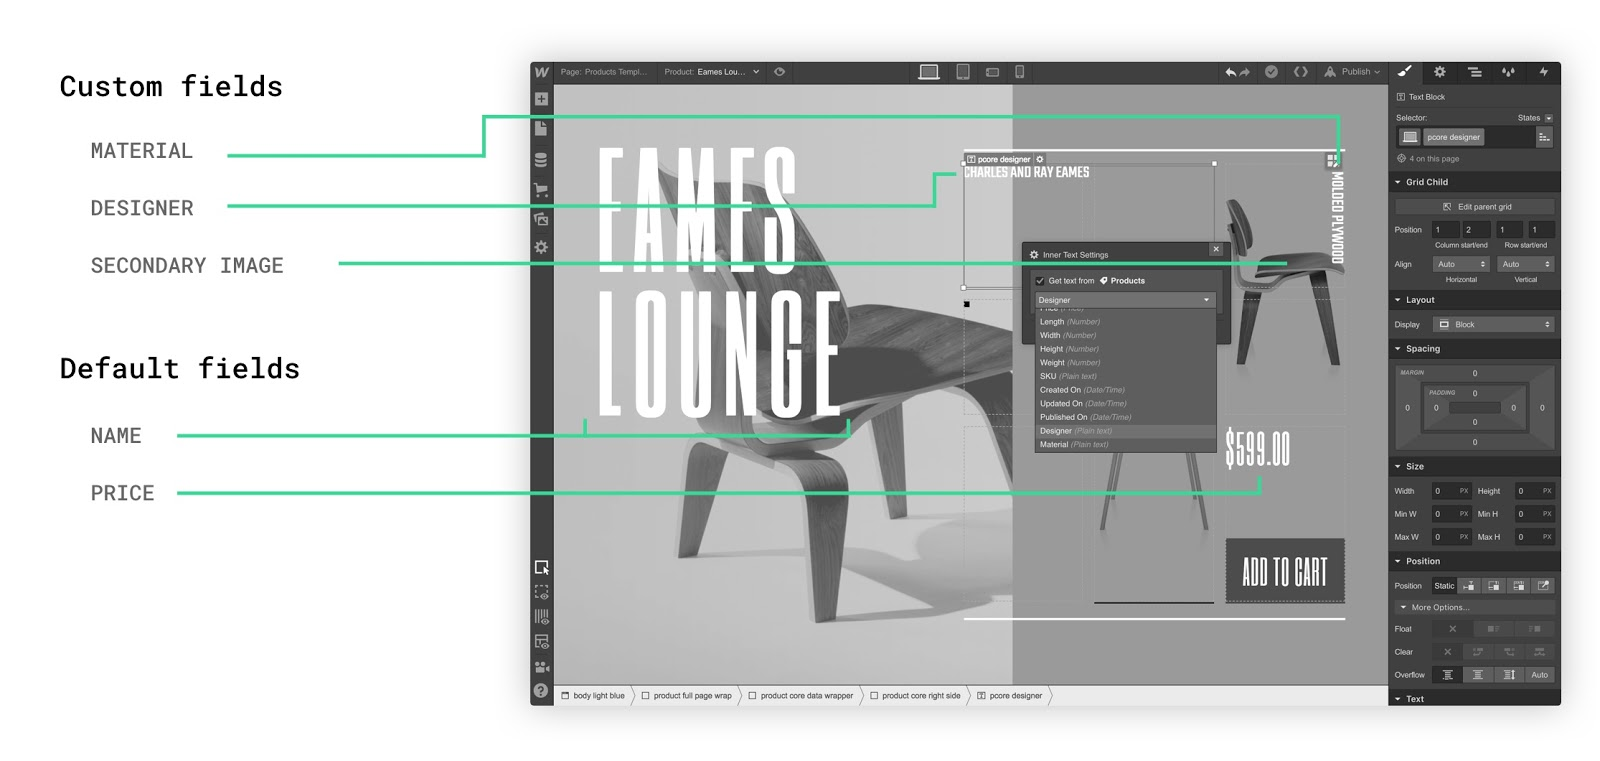 Connect your custom fields to any elements in your design.